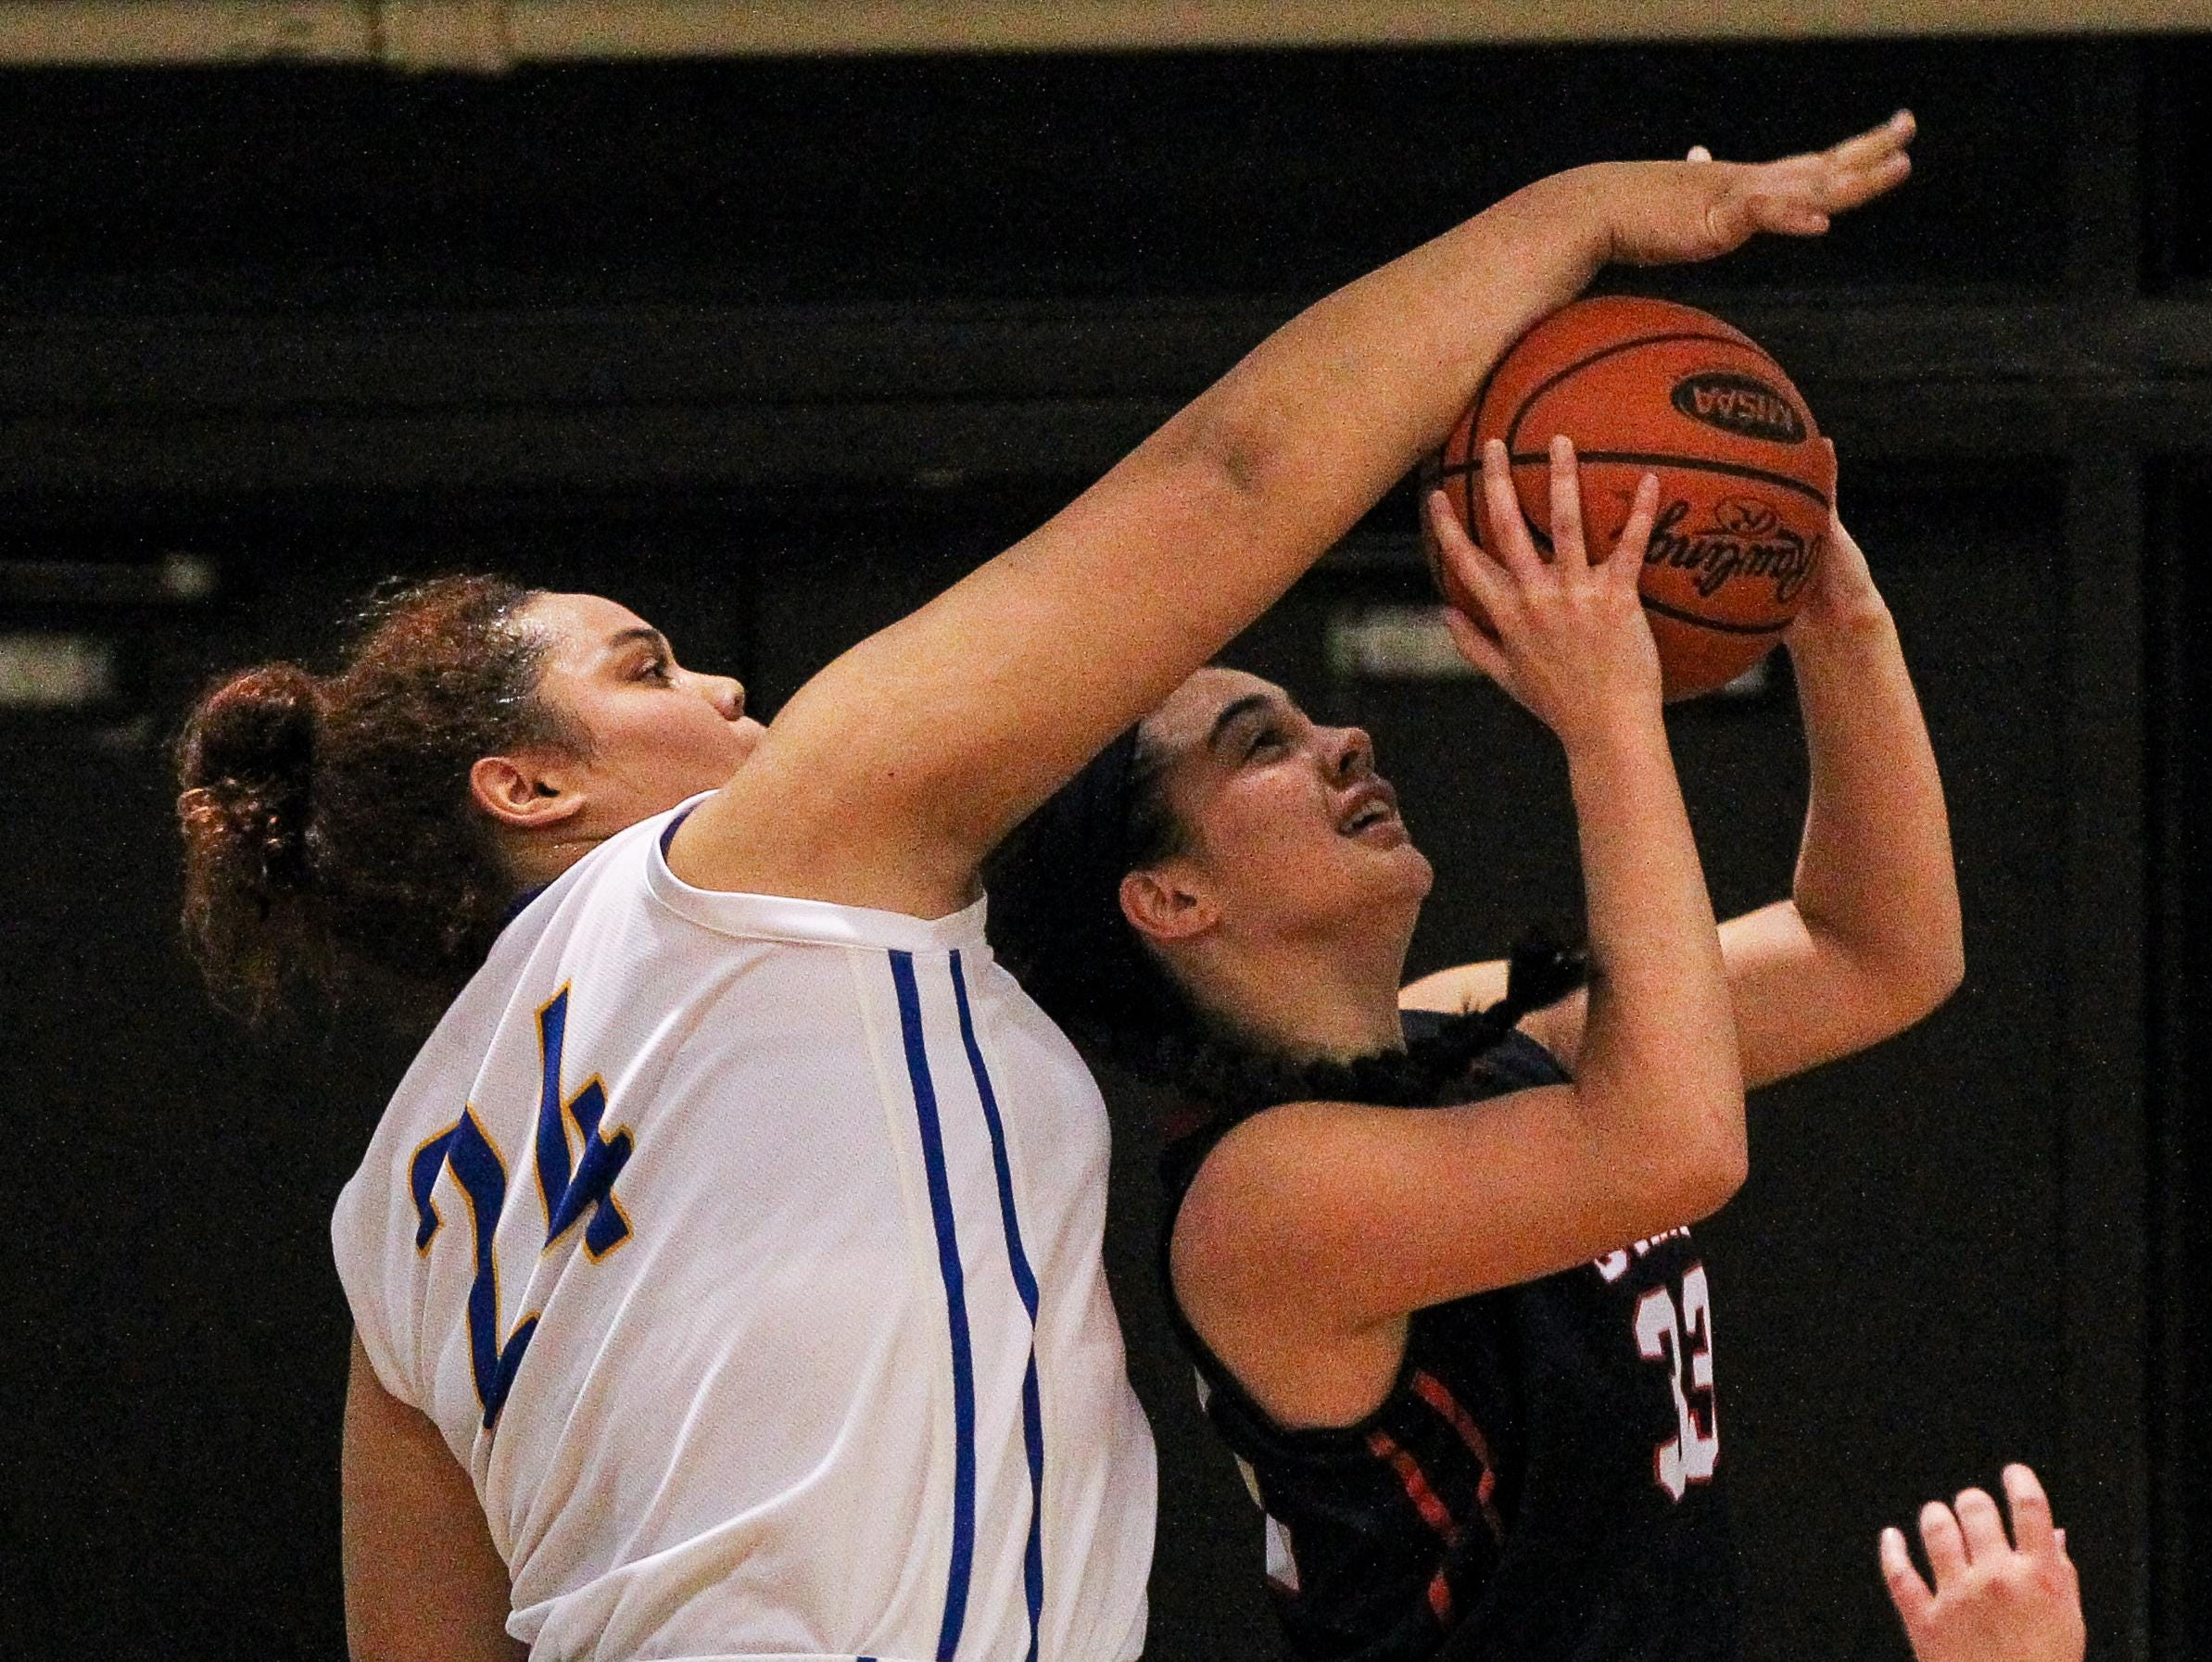 NewCath's Ajia Rice blocks a shot by Dixie's Brooke Davis during the first quarter.